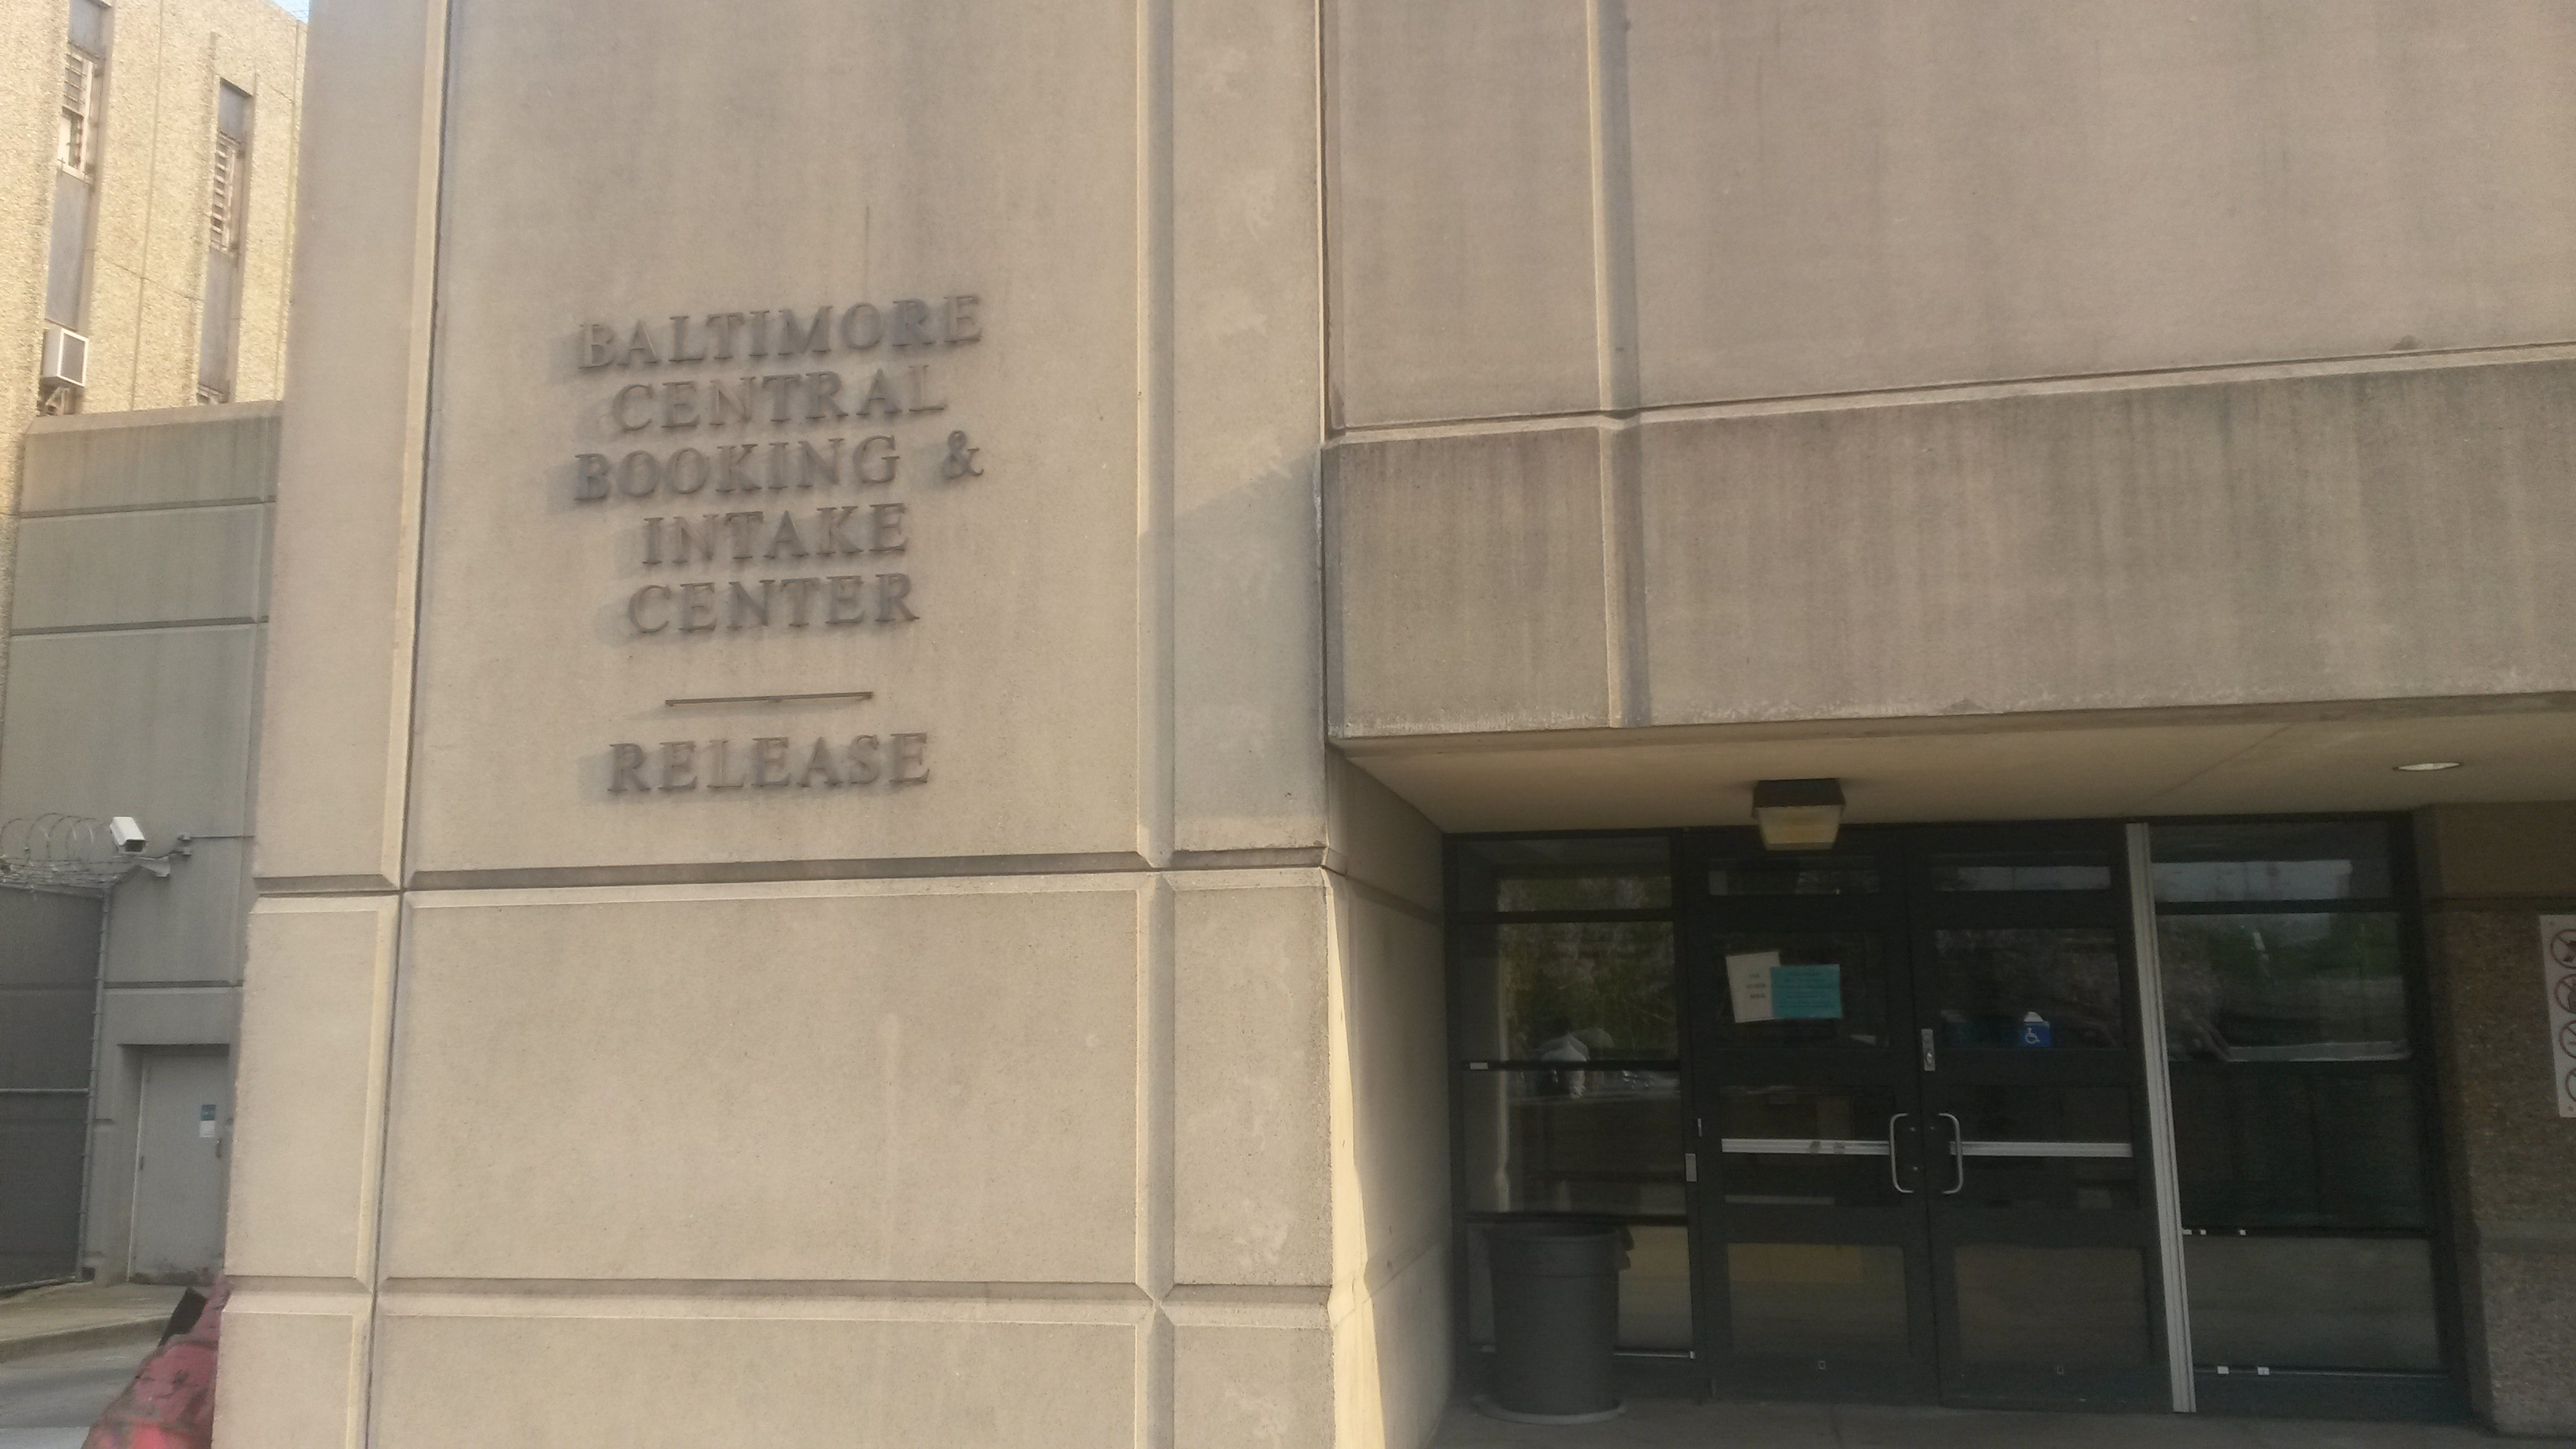 The Baltimore jail system's intake and release building. I spent a LOT of time here.